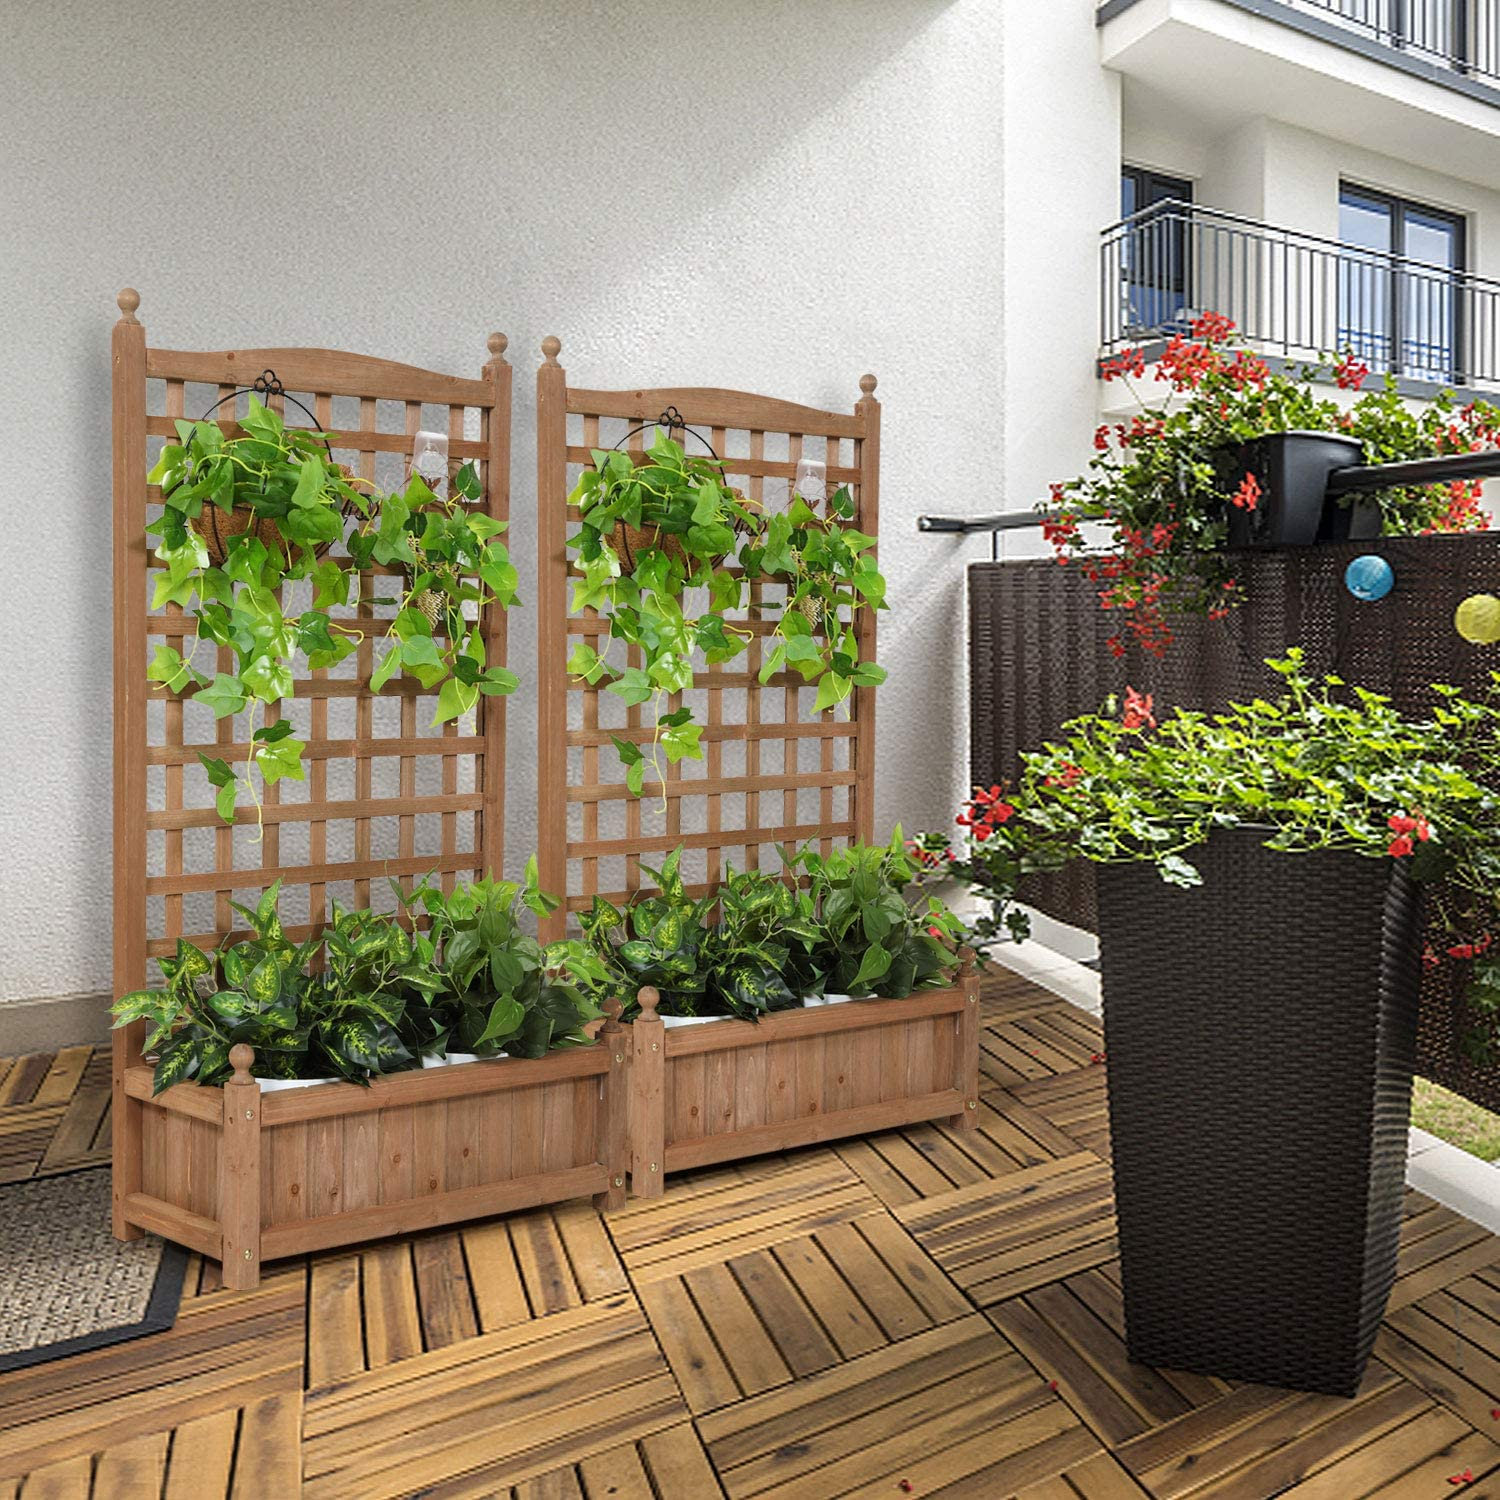 Planter Raised Bed for Climbing Plants Wood Garden Raised Bed with Trellis for Climbing Plants Outdoor